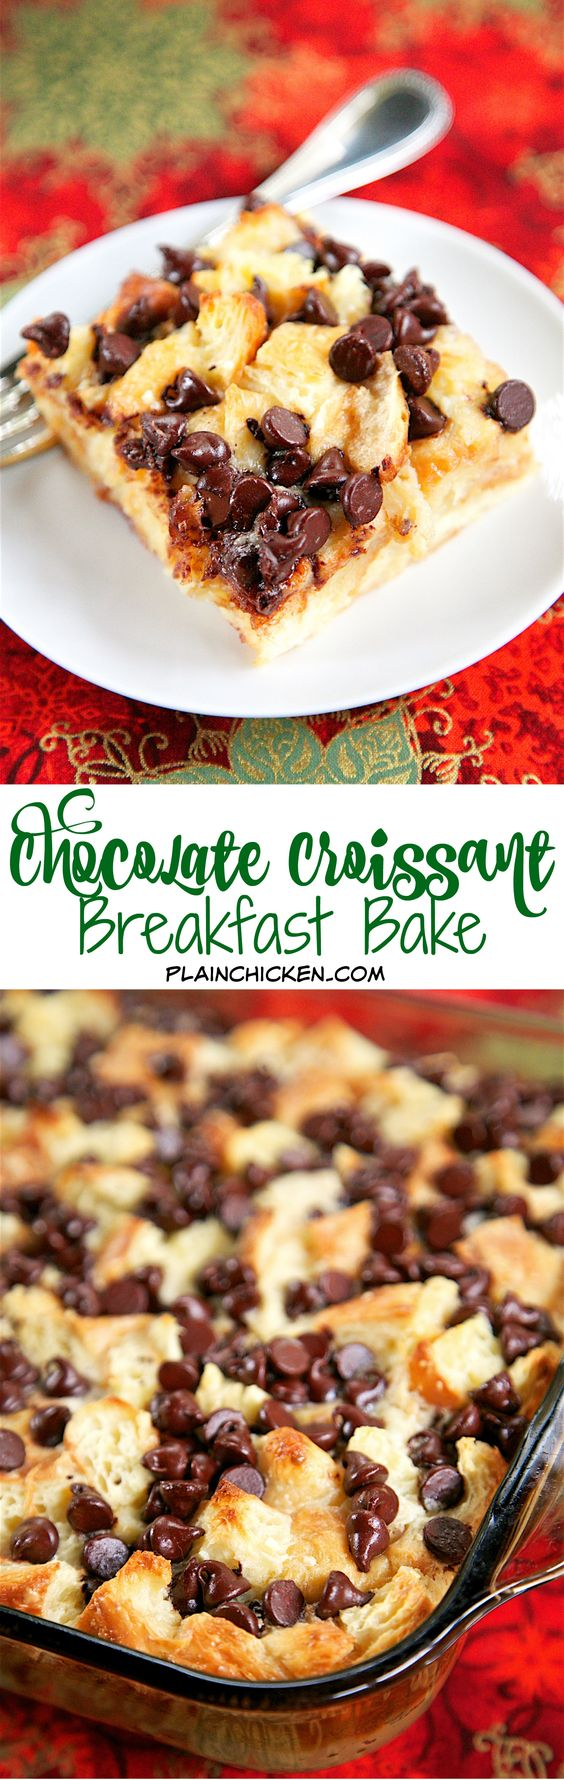 Chocolate Croissant Breakfast Bake - Buttery croissants, cream cheese, sugar, eggs, milk and chocolate. Can assemble and refrigerate overnight. This is incredibly delicious! Can eat for breakfast or dessert.